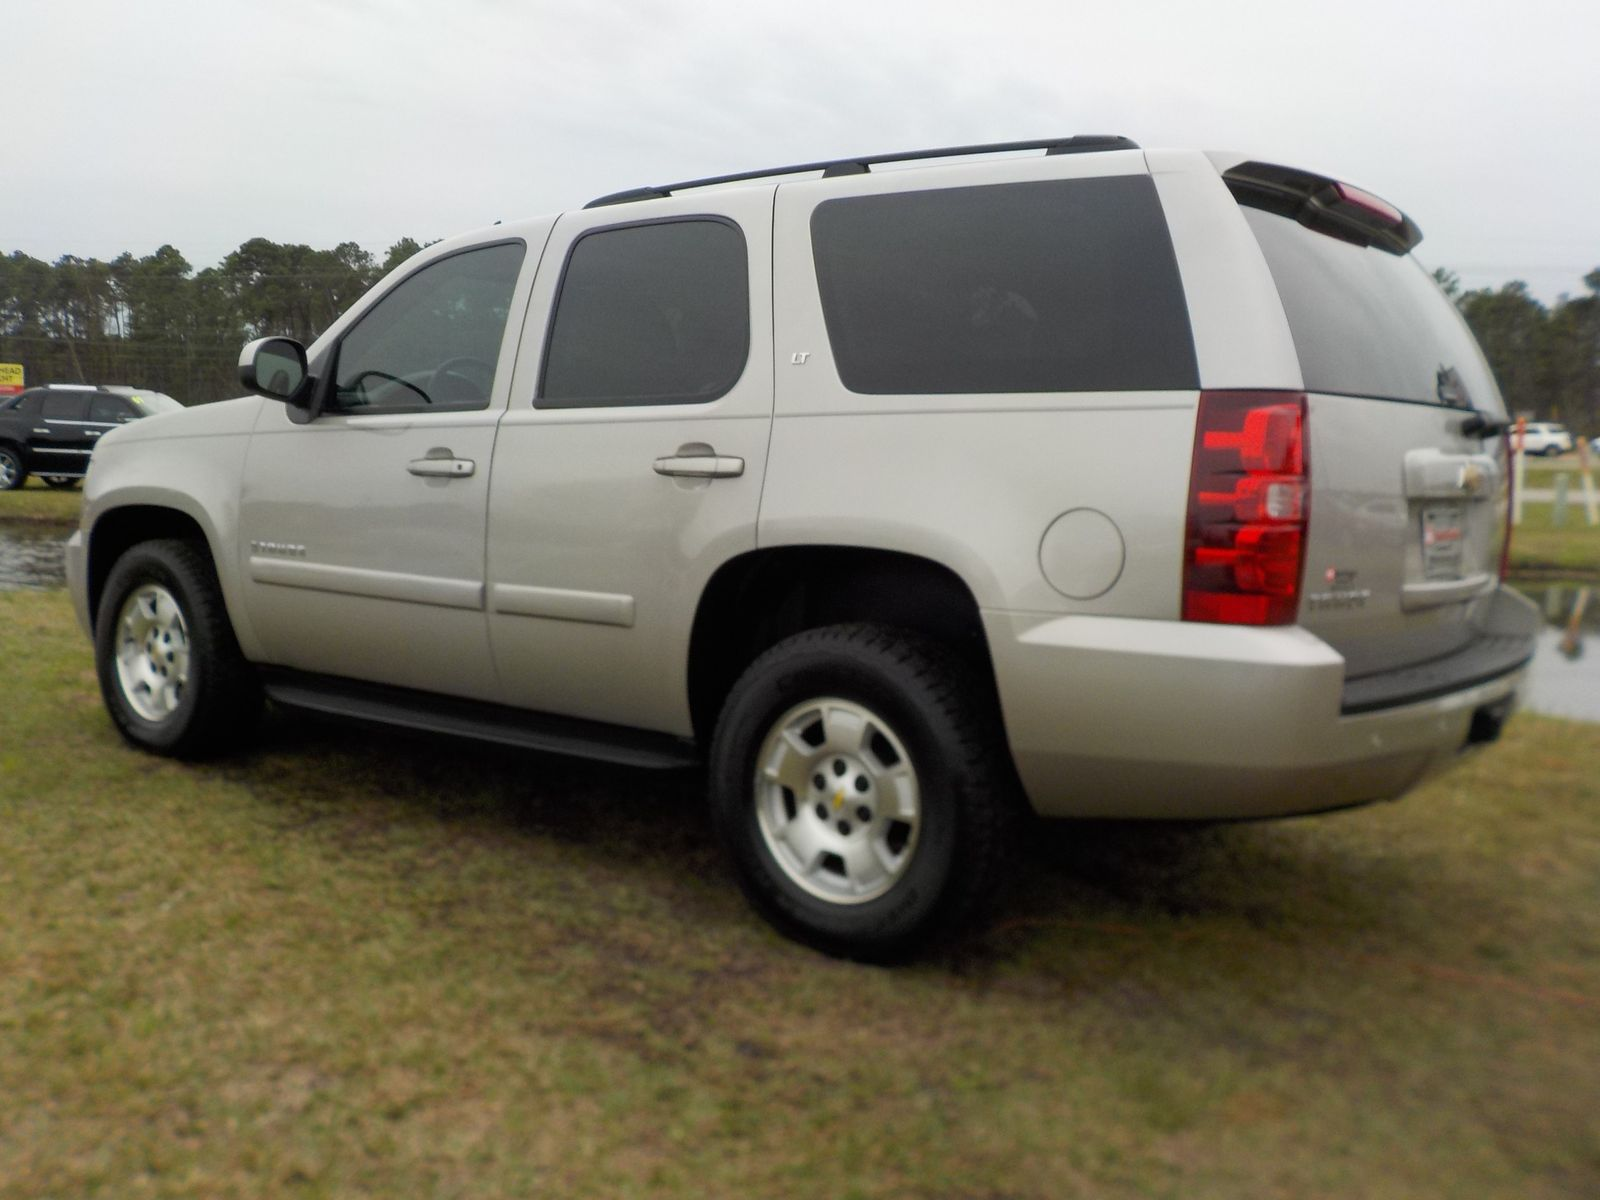 reviews tahoe carmax features specs research chevrolet